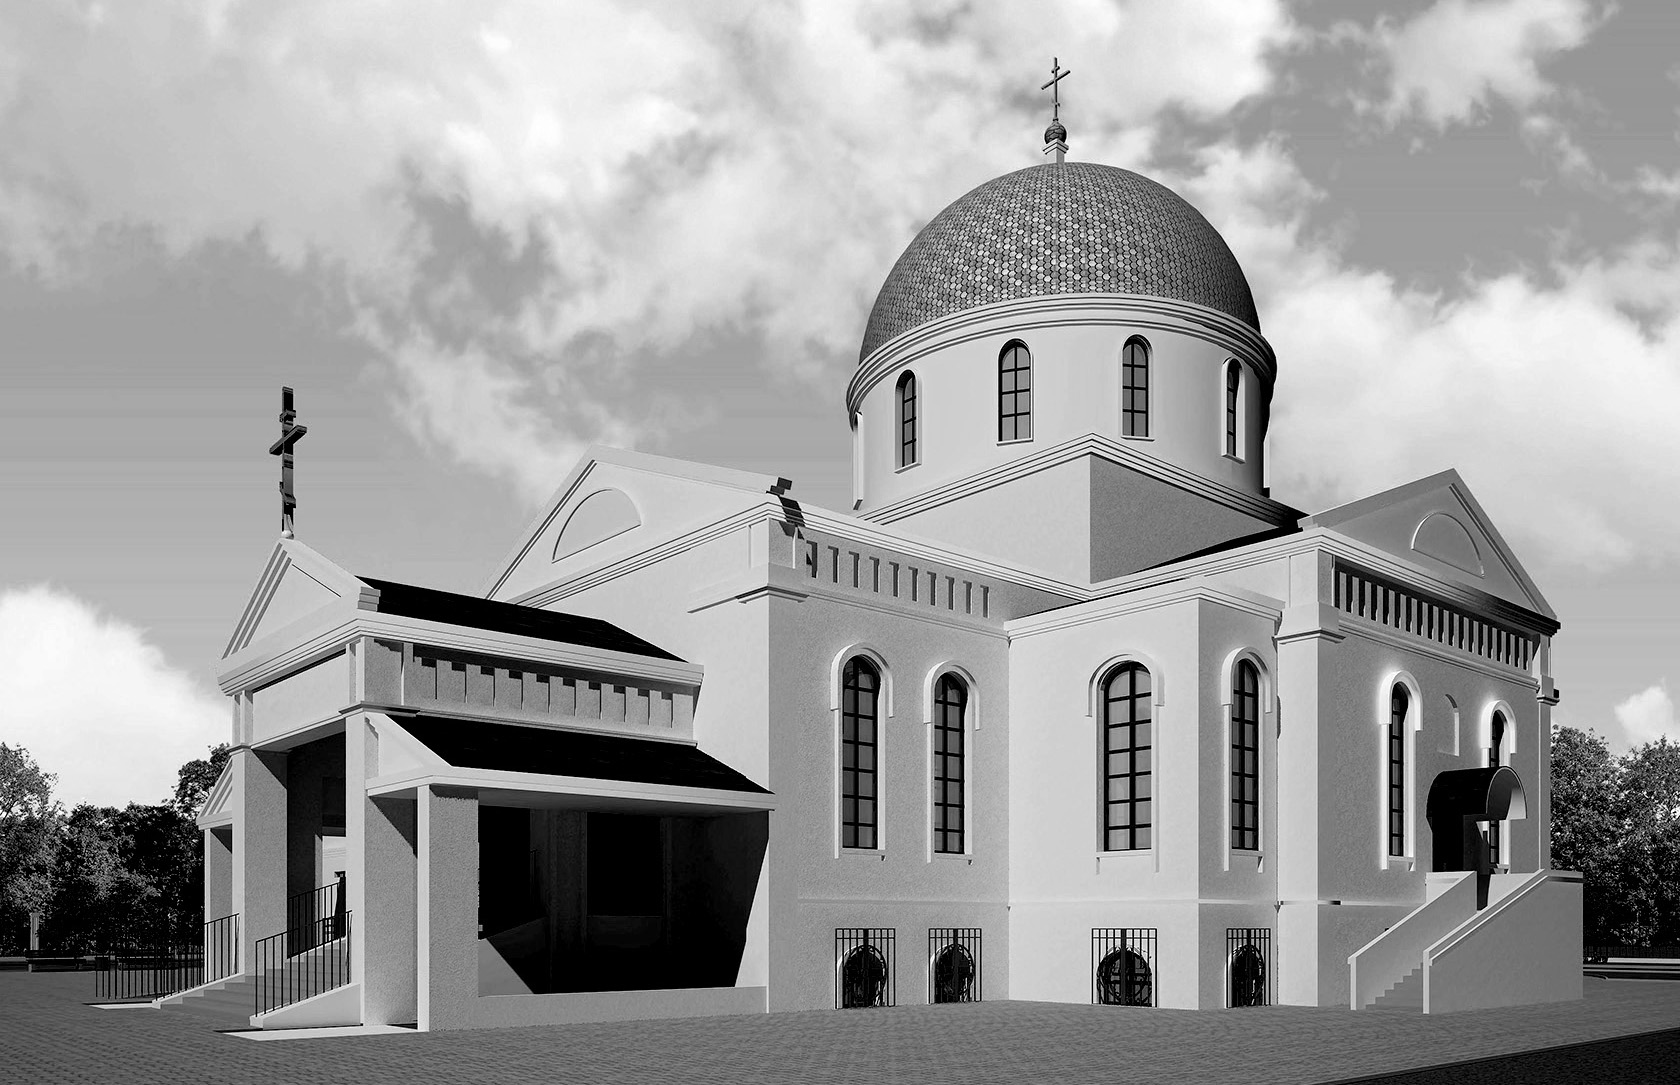 church architecture, church center, orthodox church project,, sacred architecture, byzantine church project